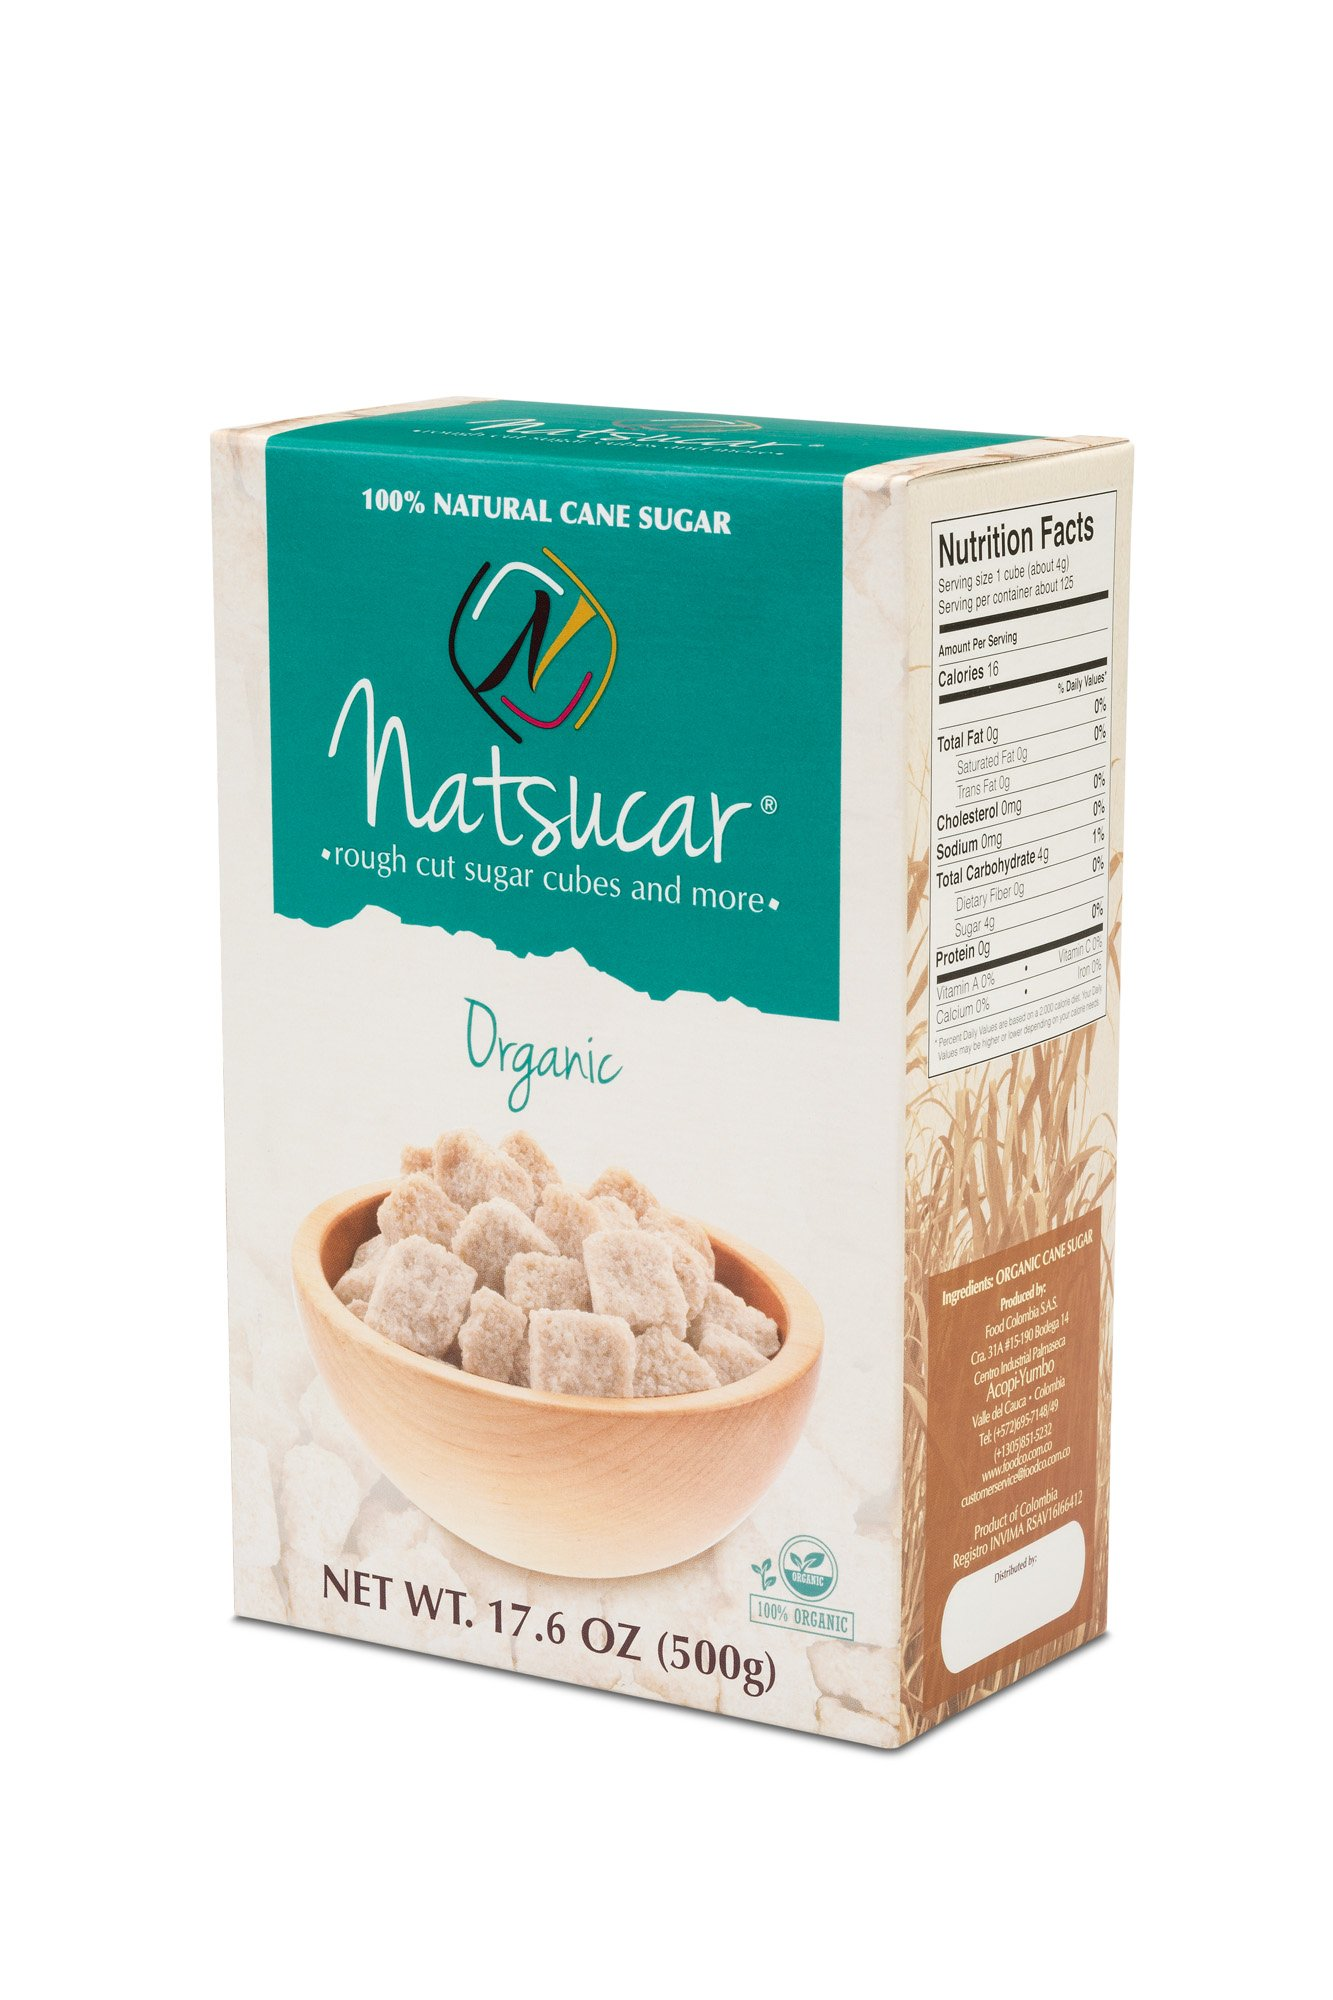 Natsucar ORGANIC Rough Cut Sugar Cubes (Pack of 2 - 1000g)